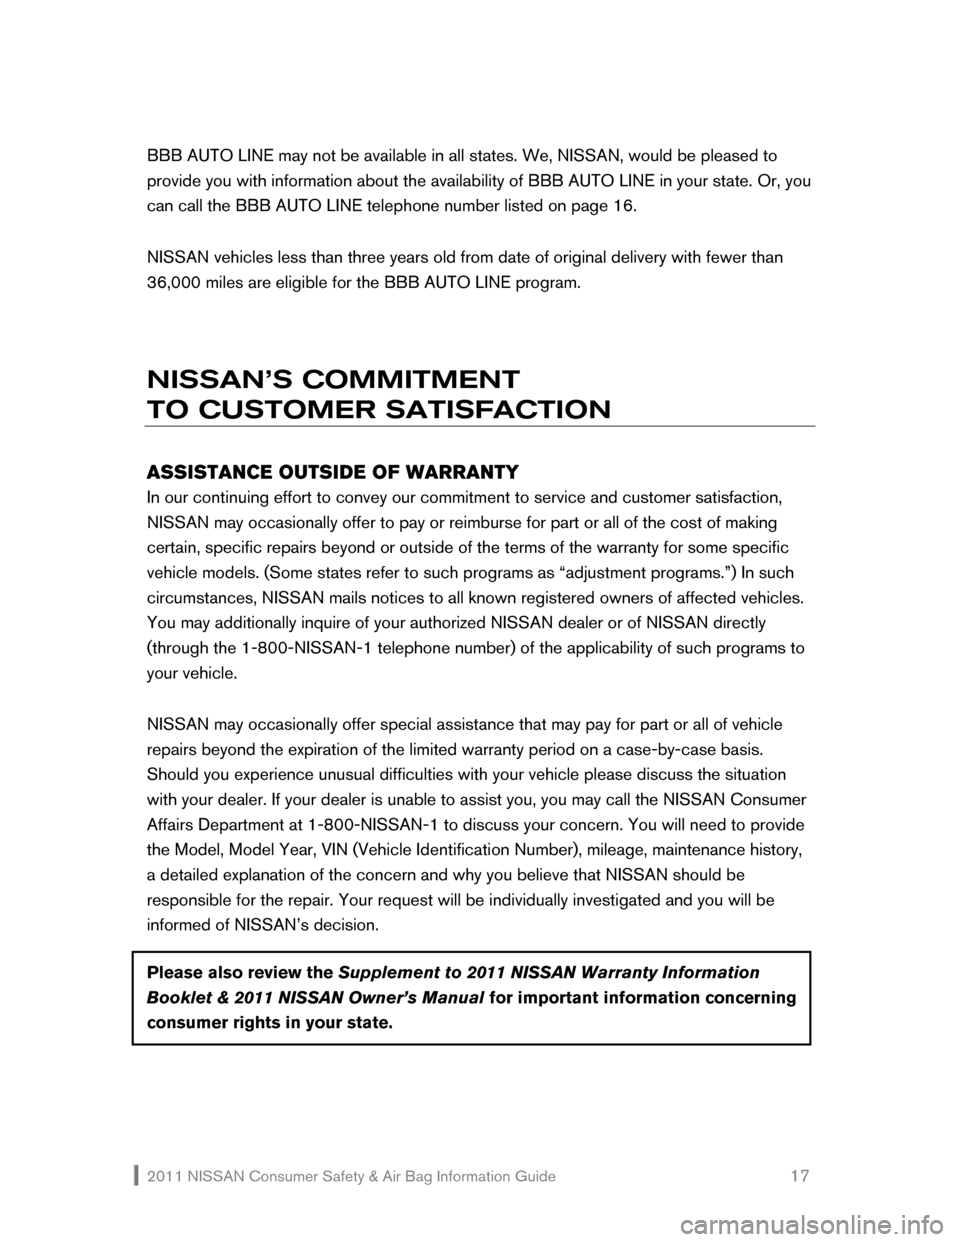 NISSAN ROGUE 2011 1.G Consumer Safety Air Bag Information Guide, Page 18